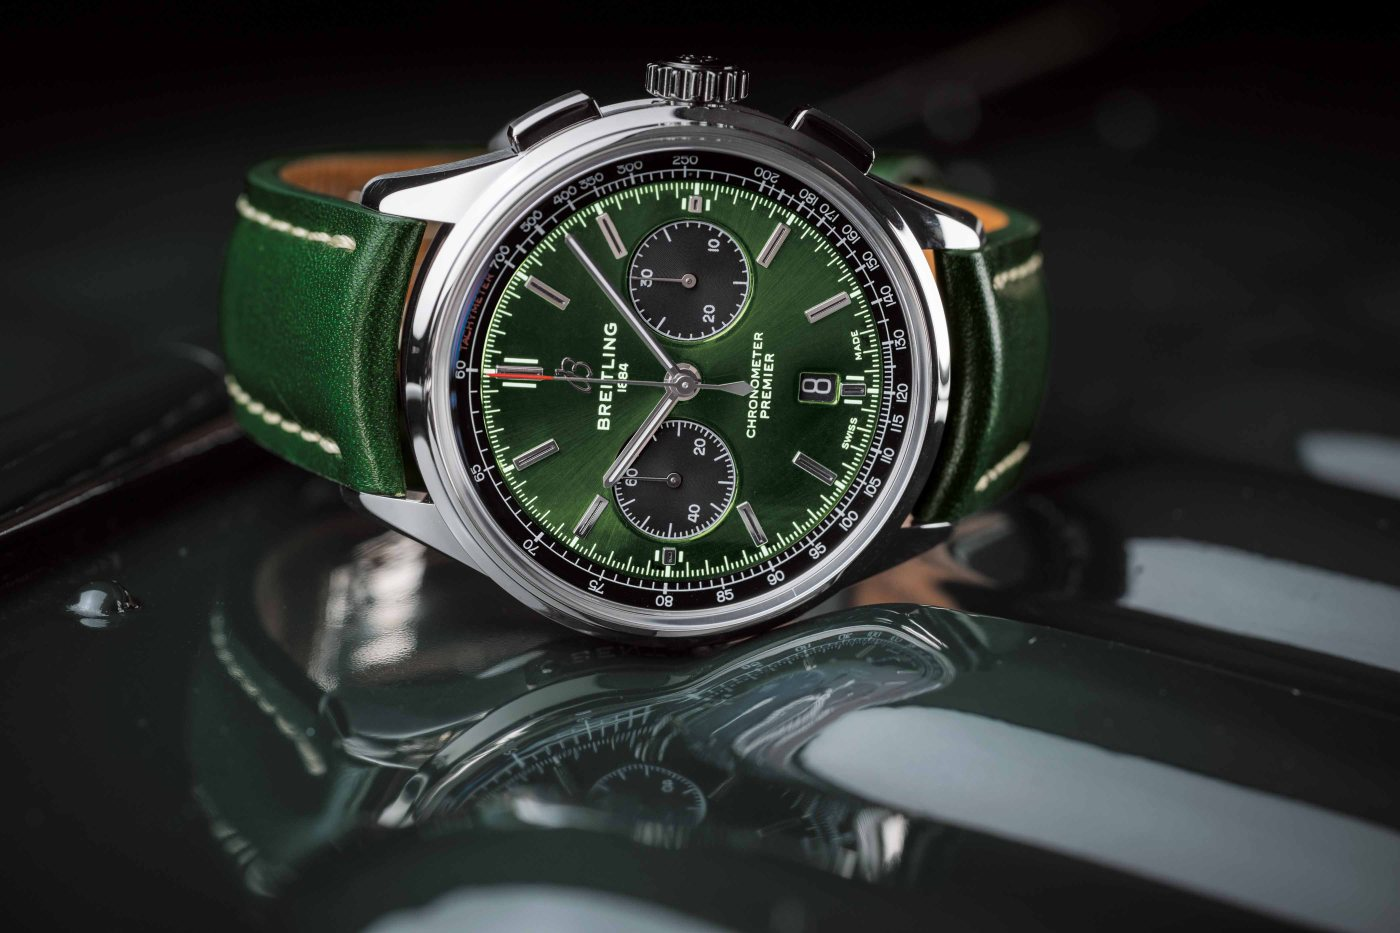 Breitling Premier B01 Chronograph 42 Bentley British Racing Green with a British racing green leather strap